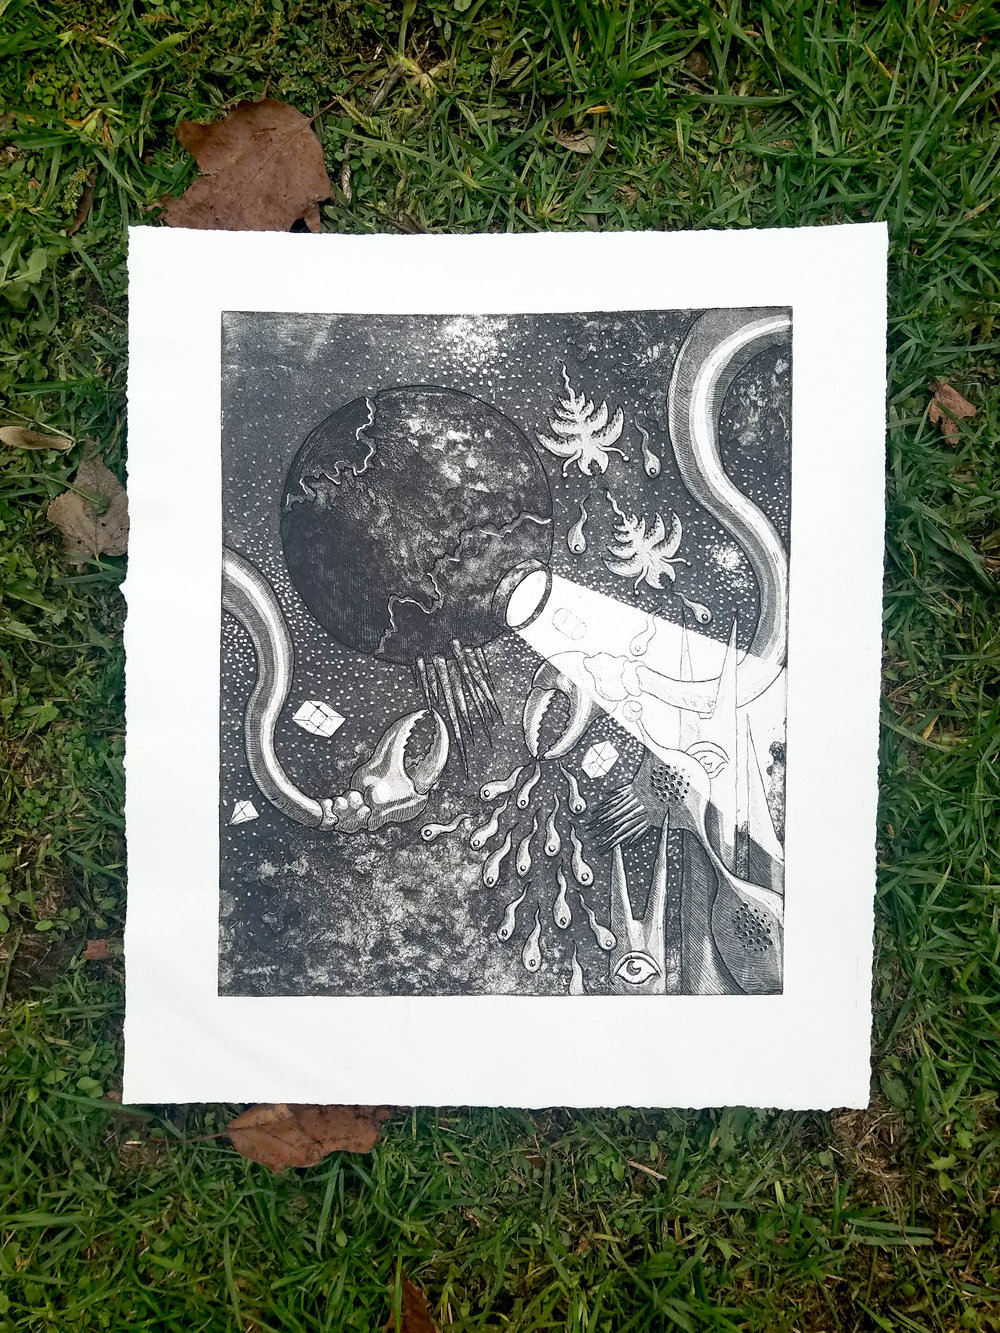 intaglio print with aquatint